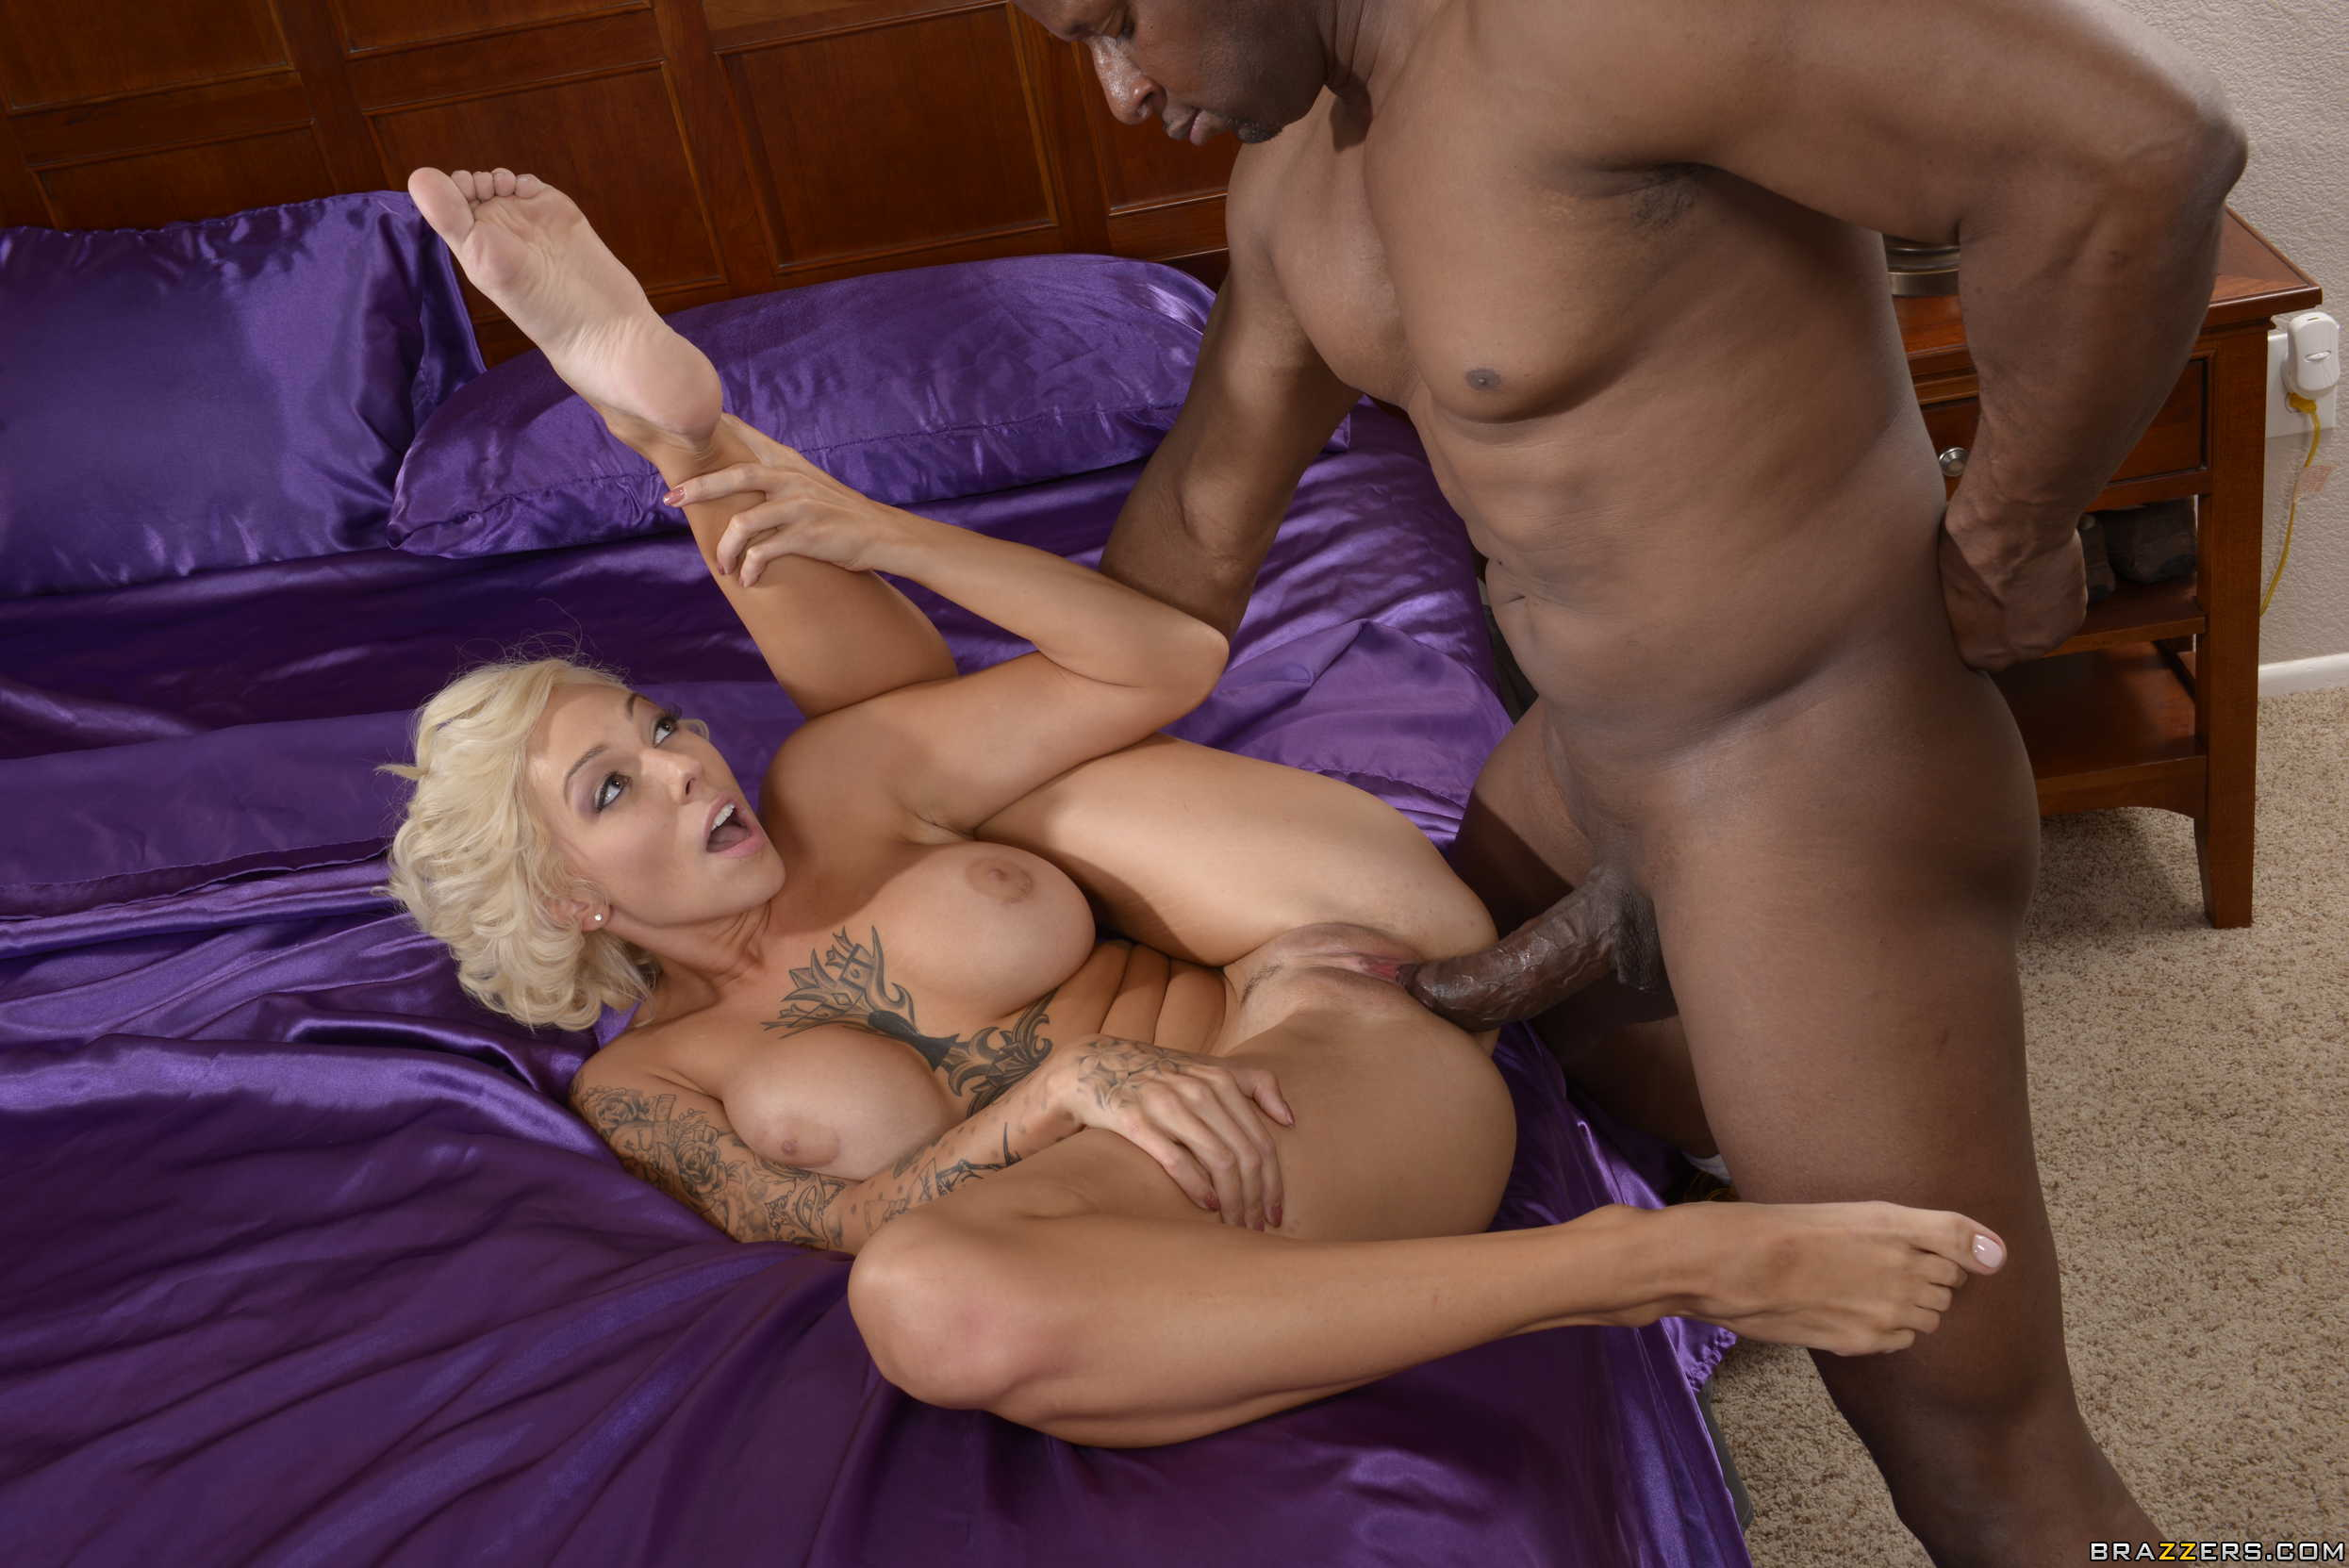 Harlow harrison loves having wild anal sex with her hunk 6